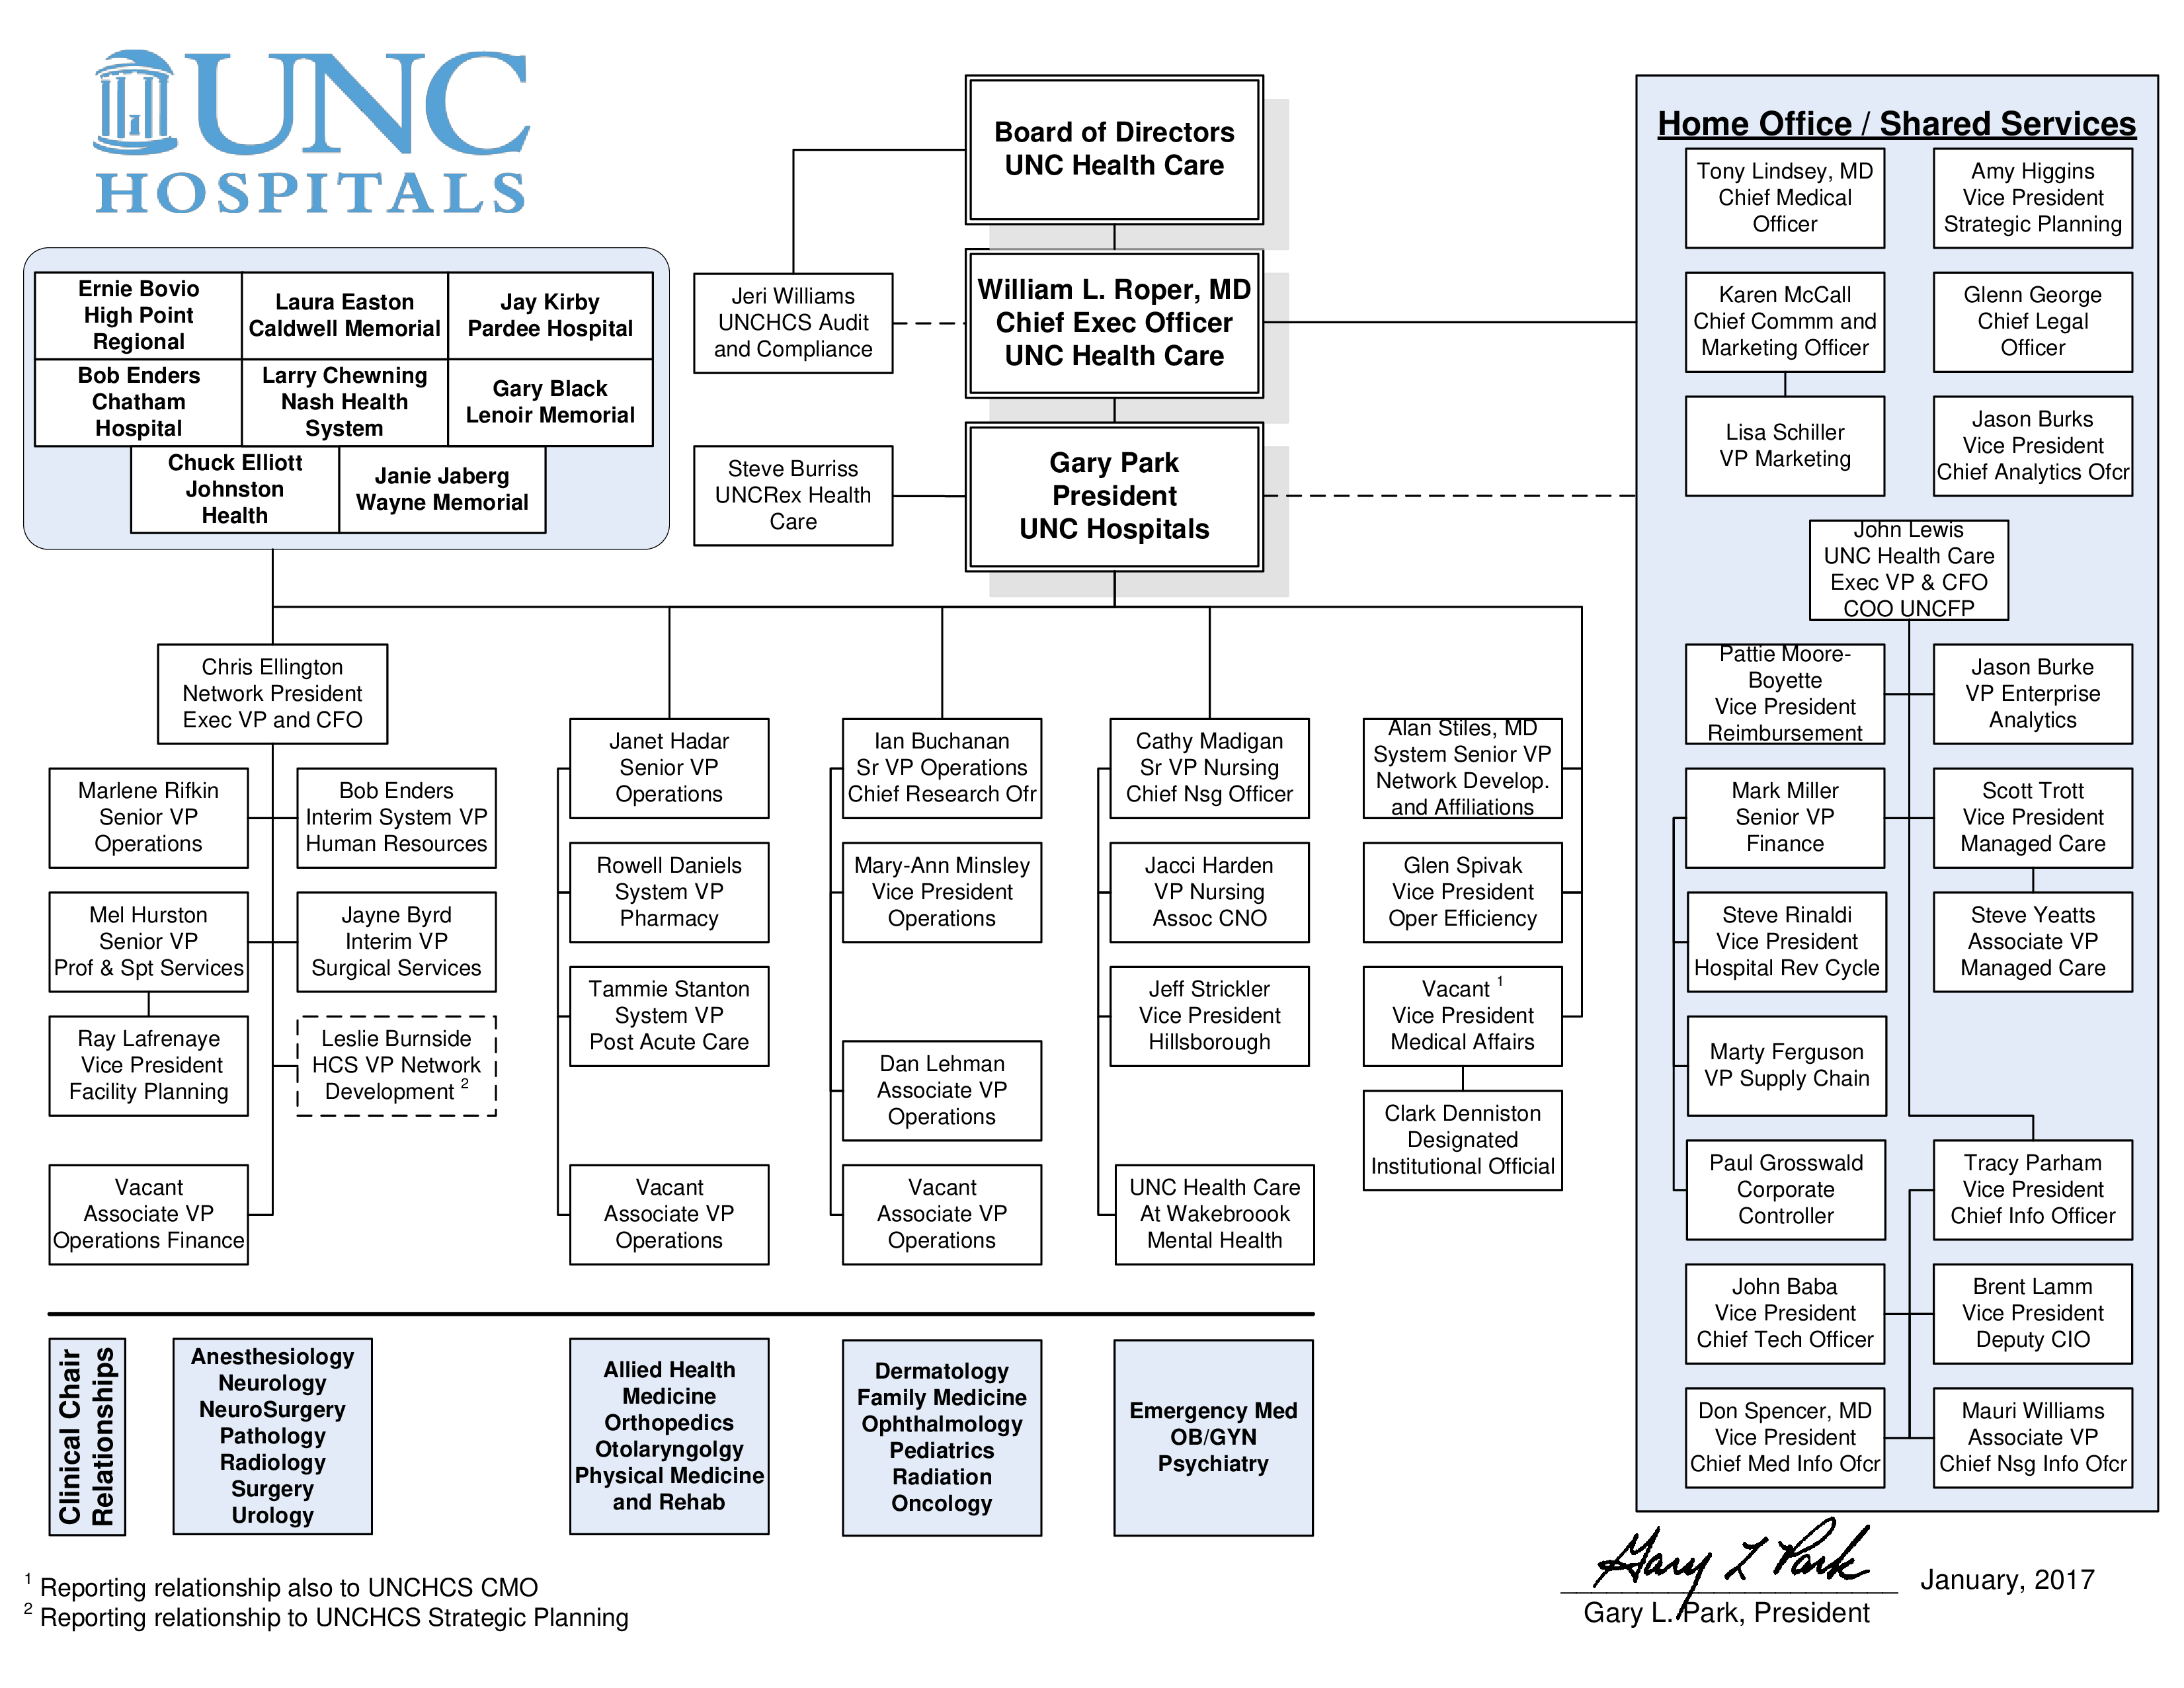 Large Hospital Organizational Chart   How to create a Large ...